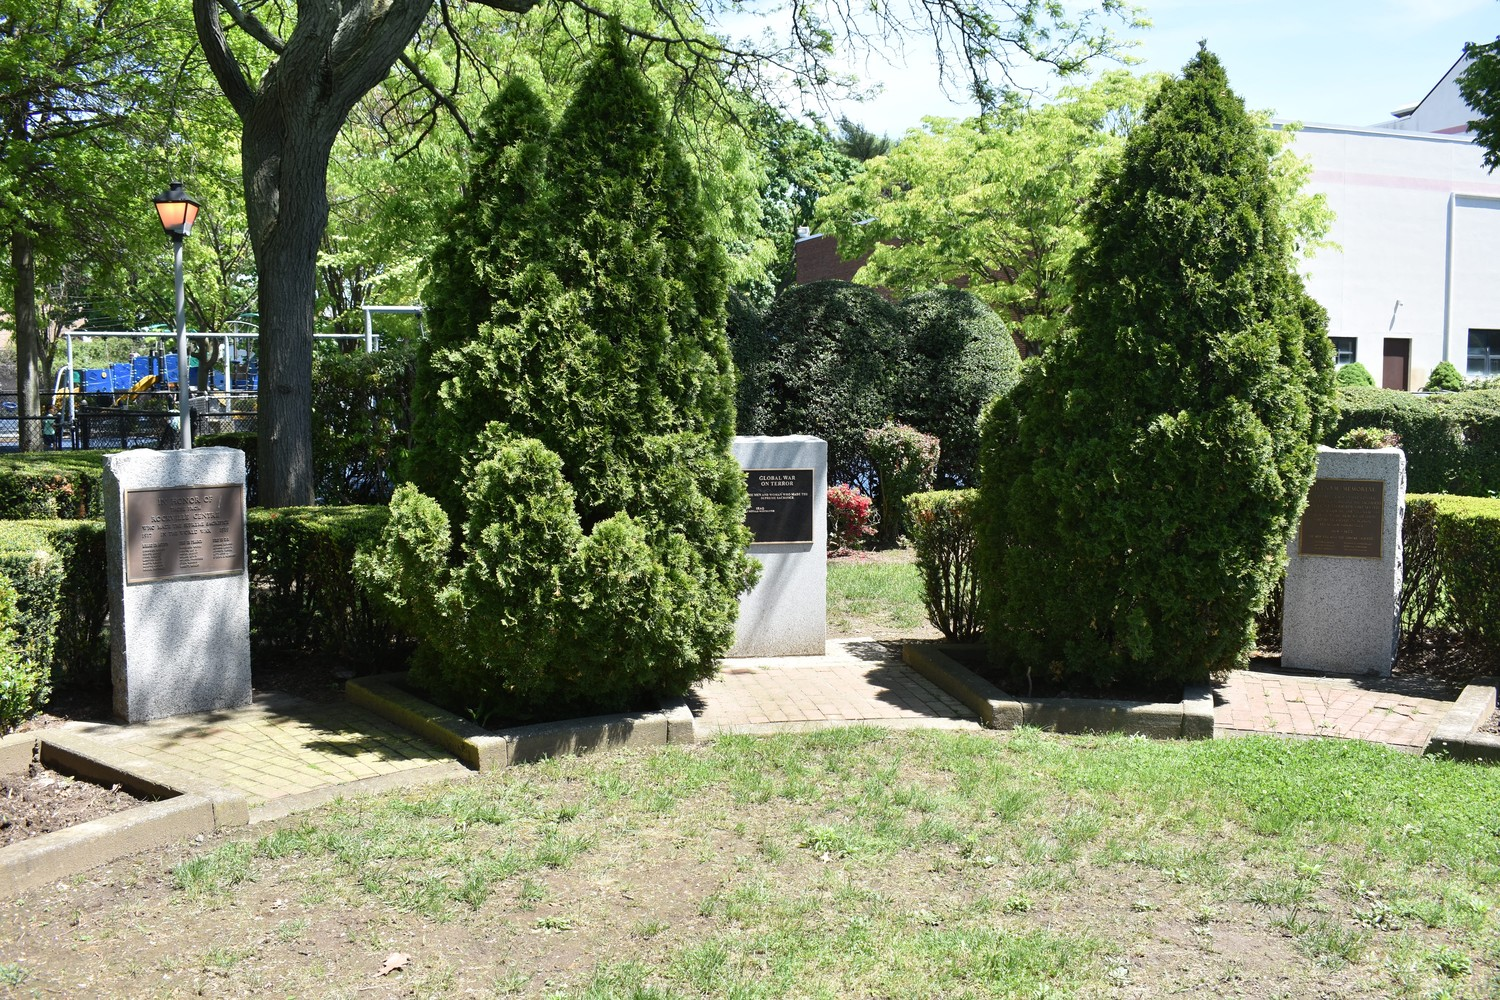 A small gathering will take place on Memorial Day by the war monuments at the John A. Anderson Recreation Center in Rockville Centre.